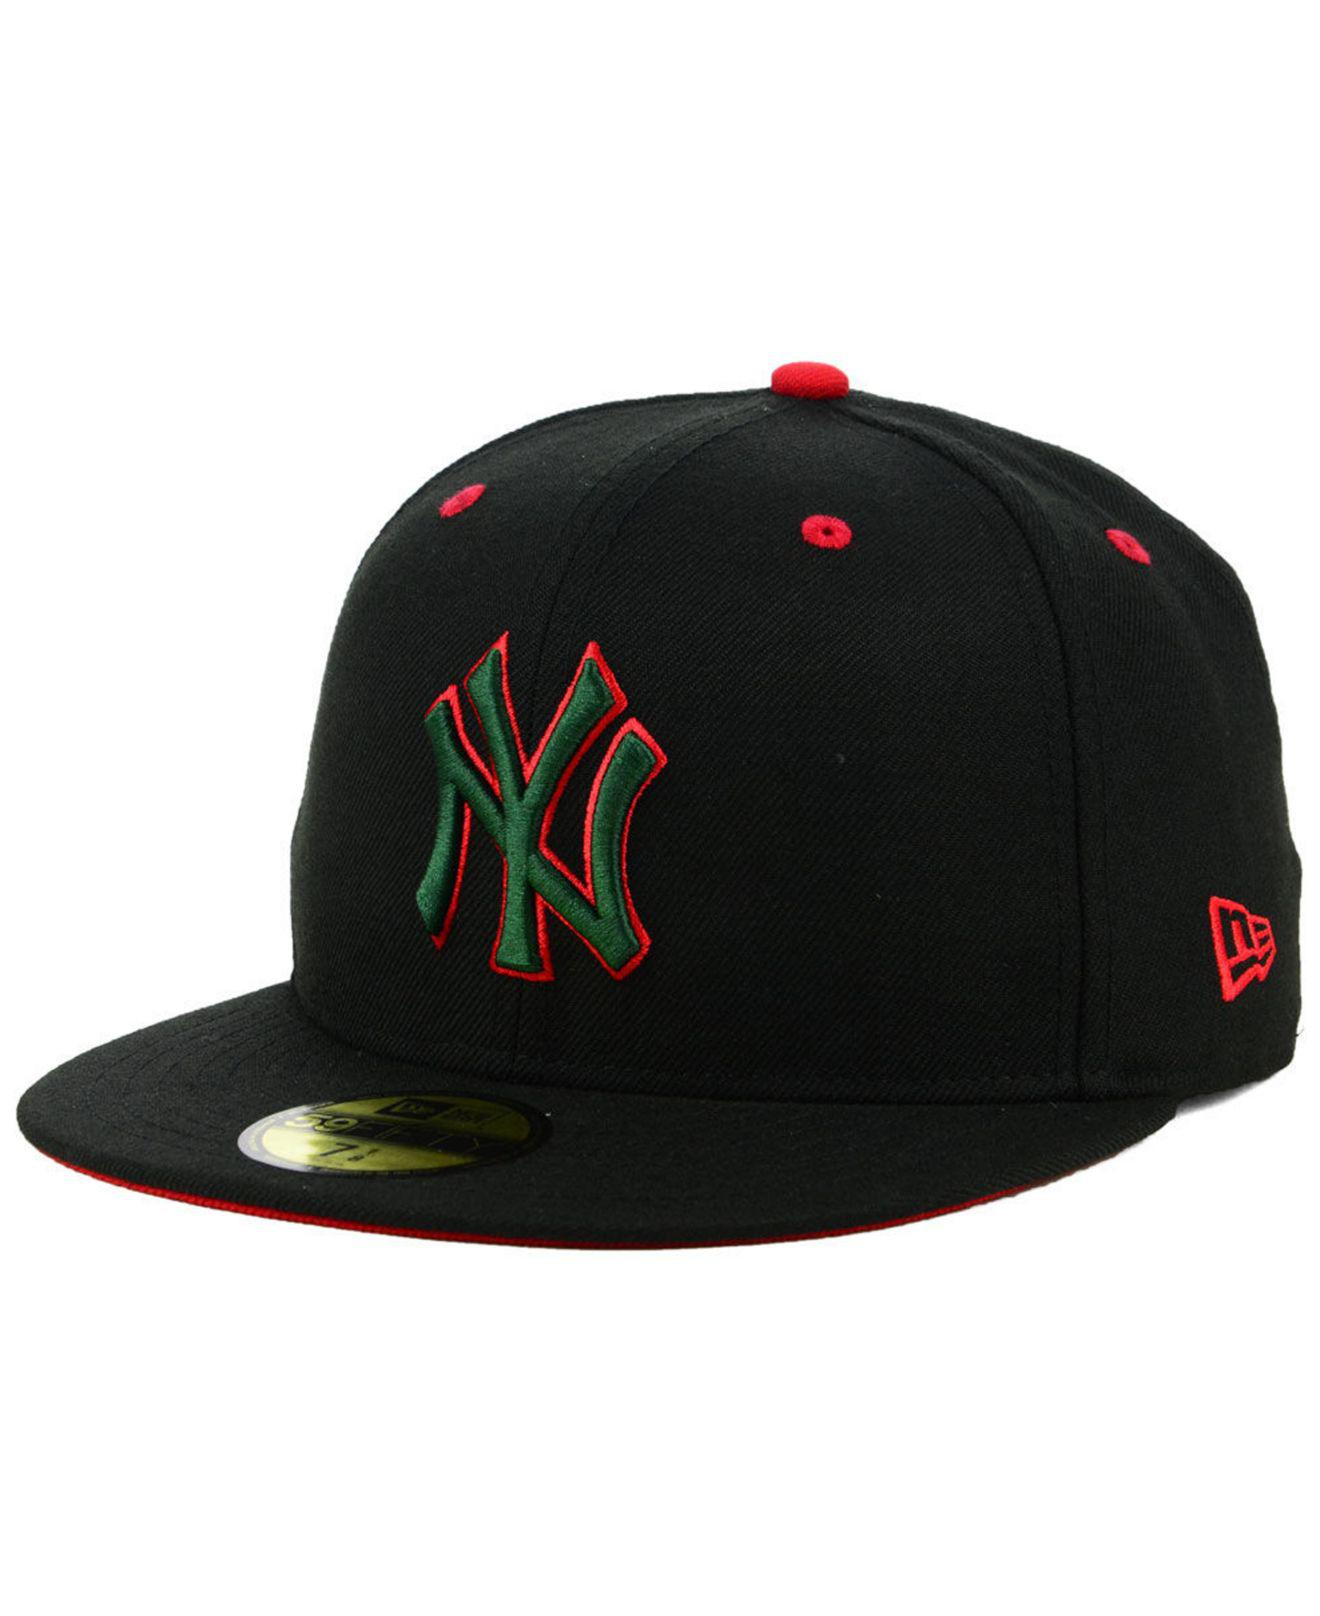 3a04b271201 Lyst - KTZ New York Yankees Italian 59fifty Fitted Cap in Black for ...